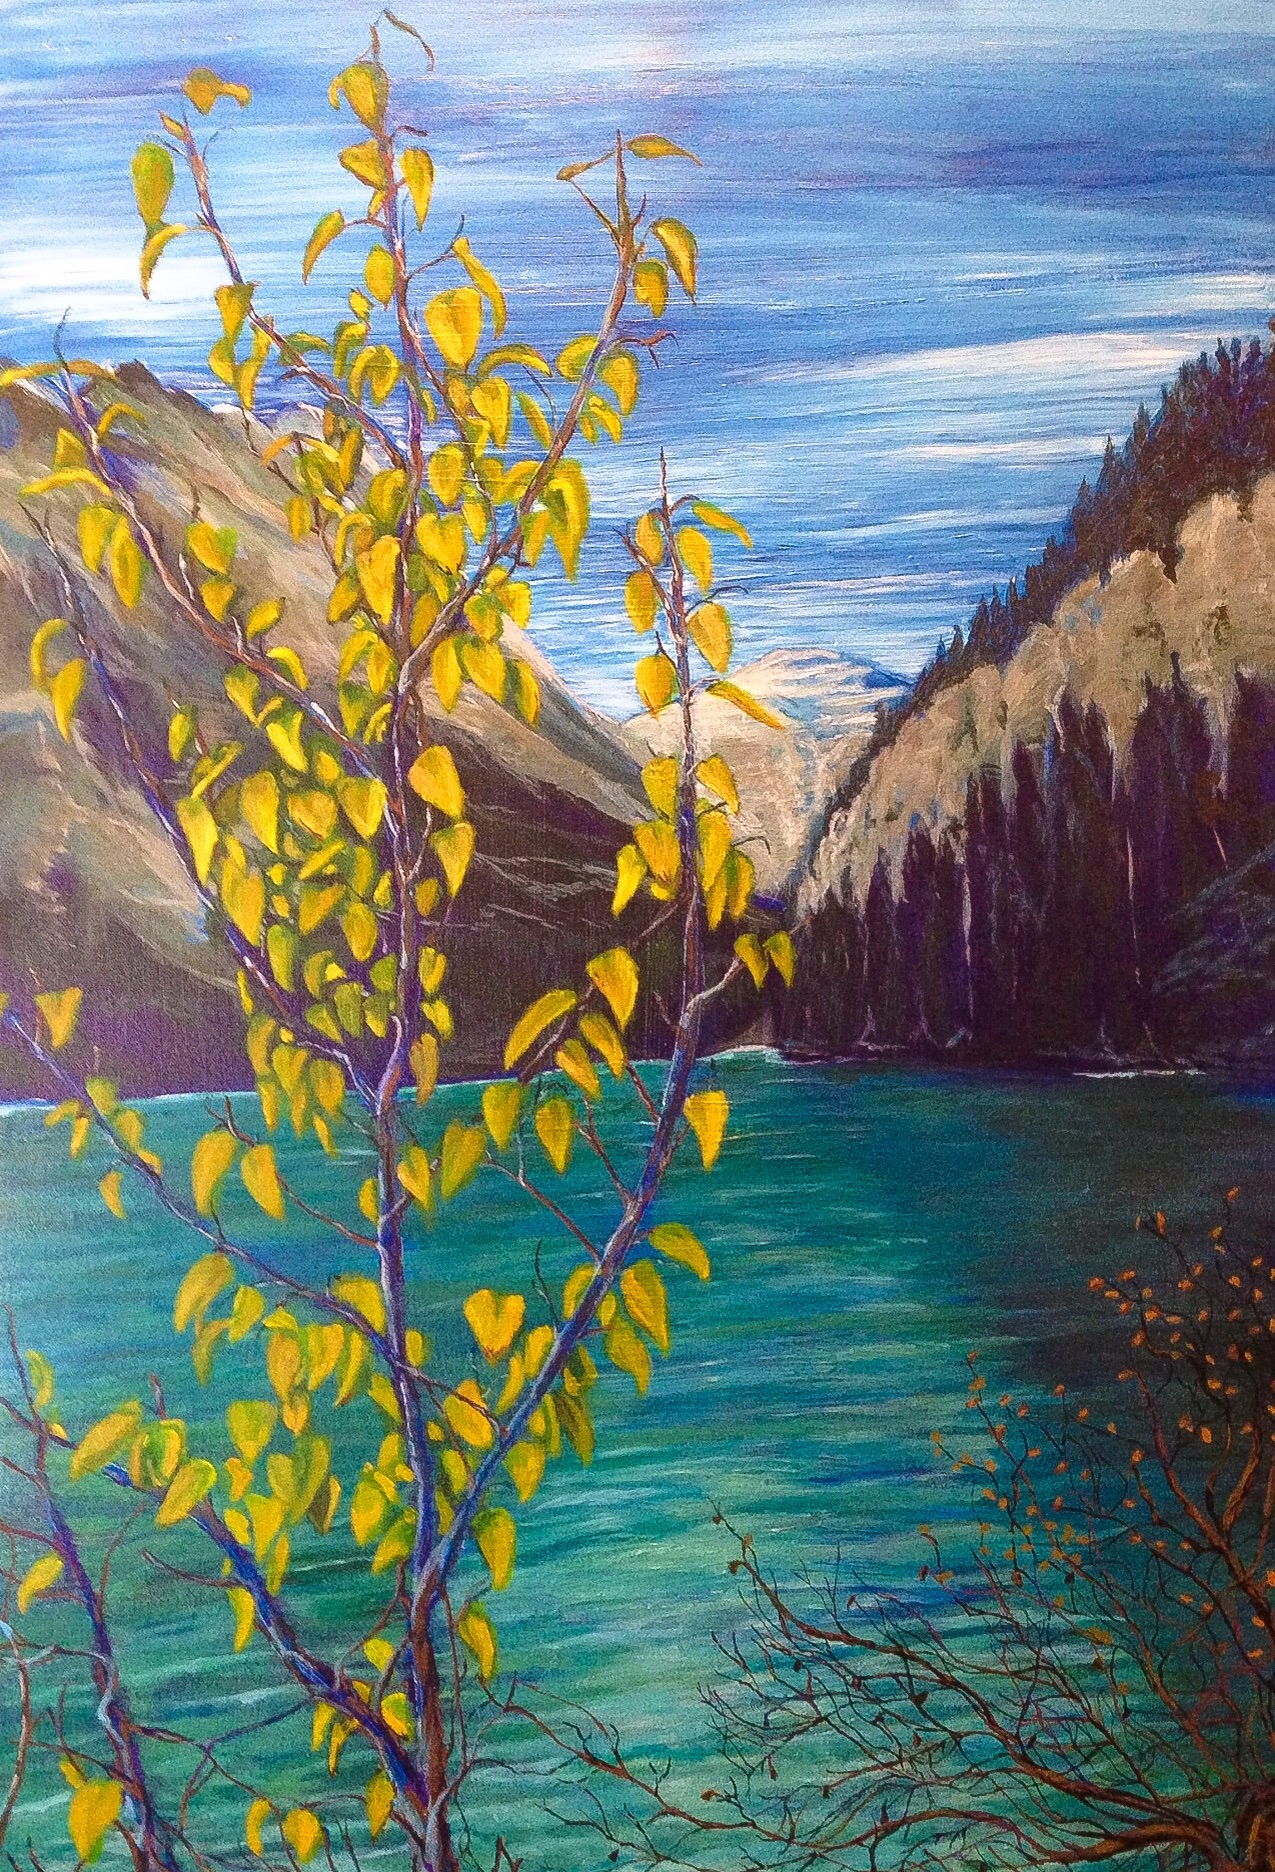 Lake Louise, Autum.   Acrylic on Canvass.  2 feet by 3 feet.  $600